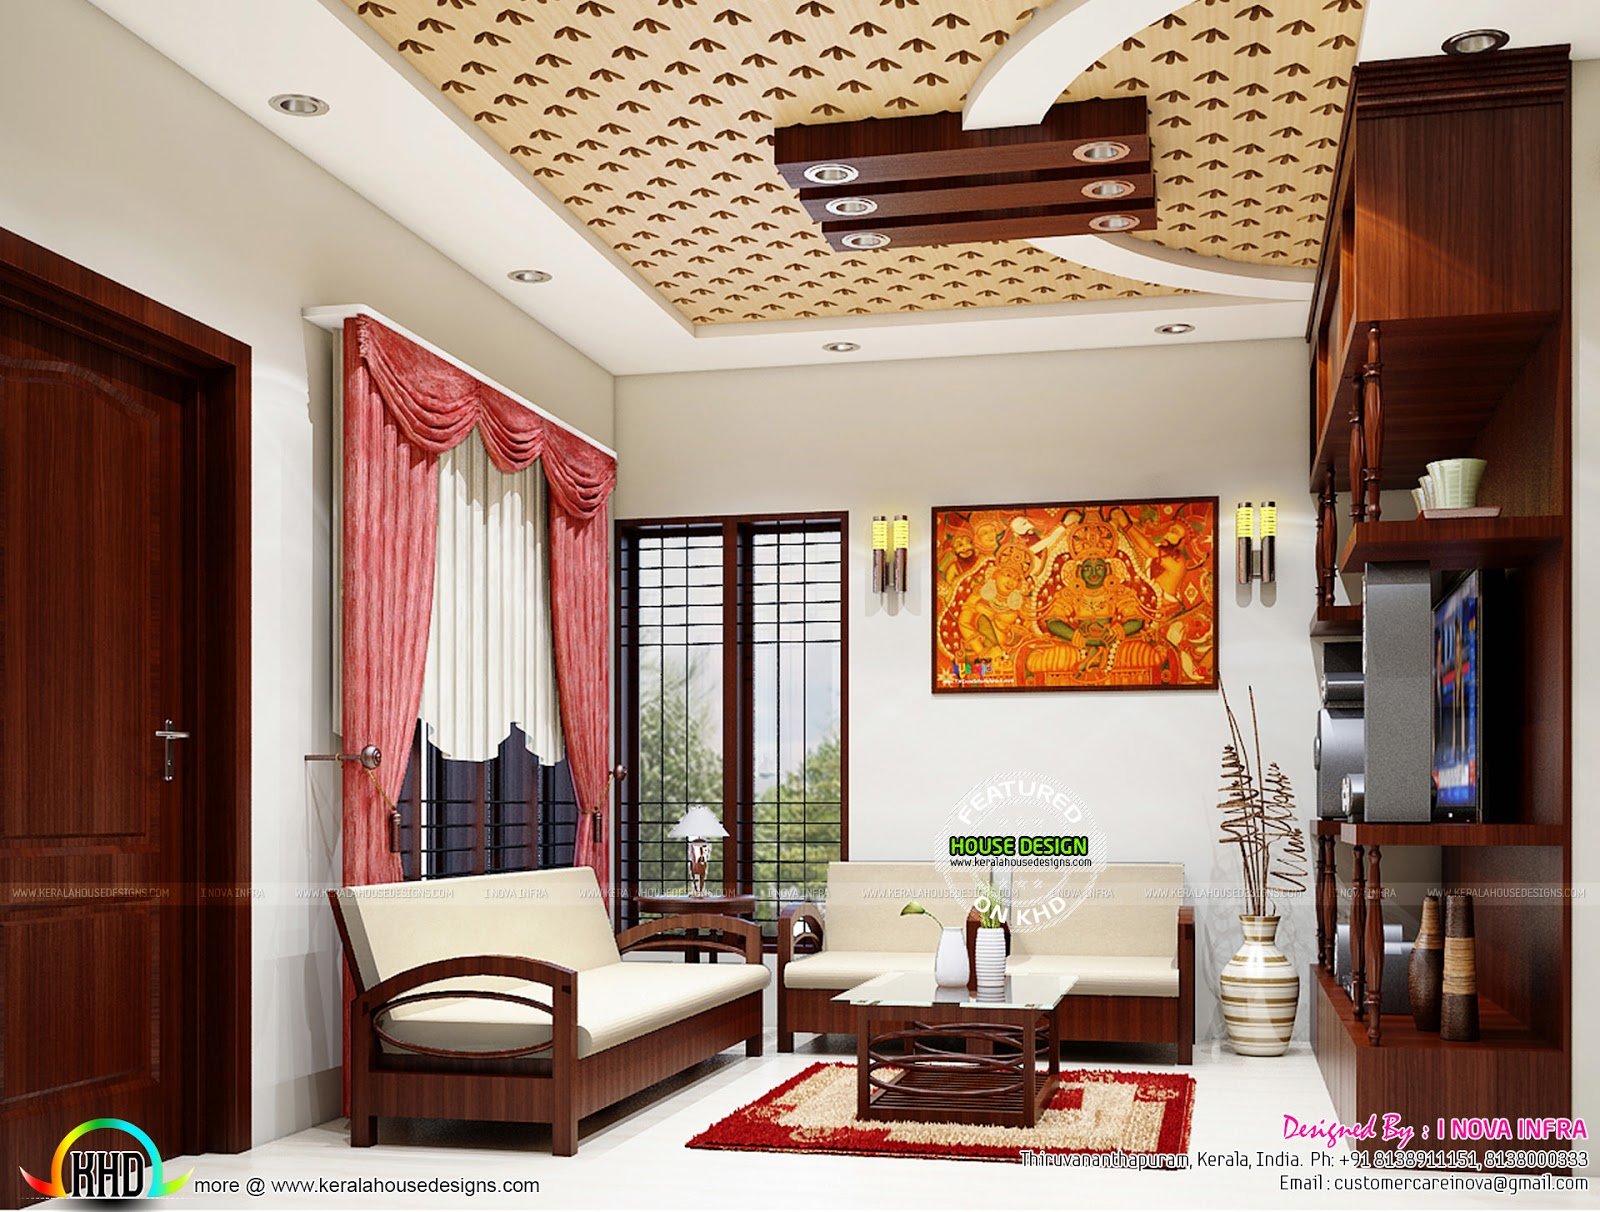 Kerala traditional interiors kerala home design and for Indoor design